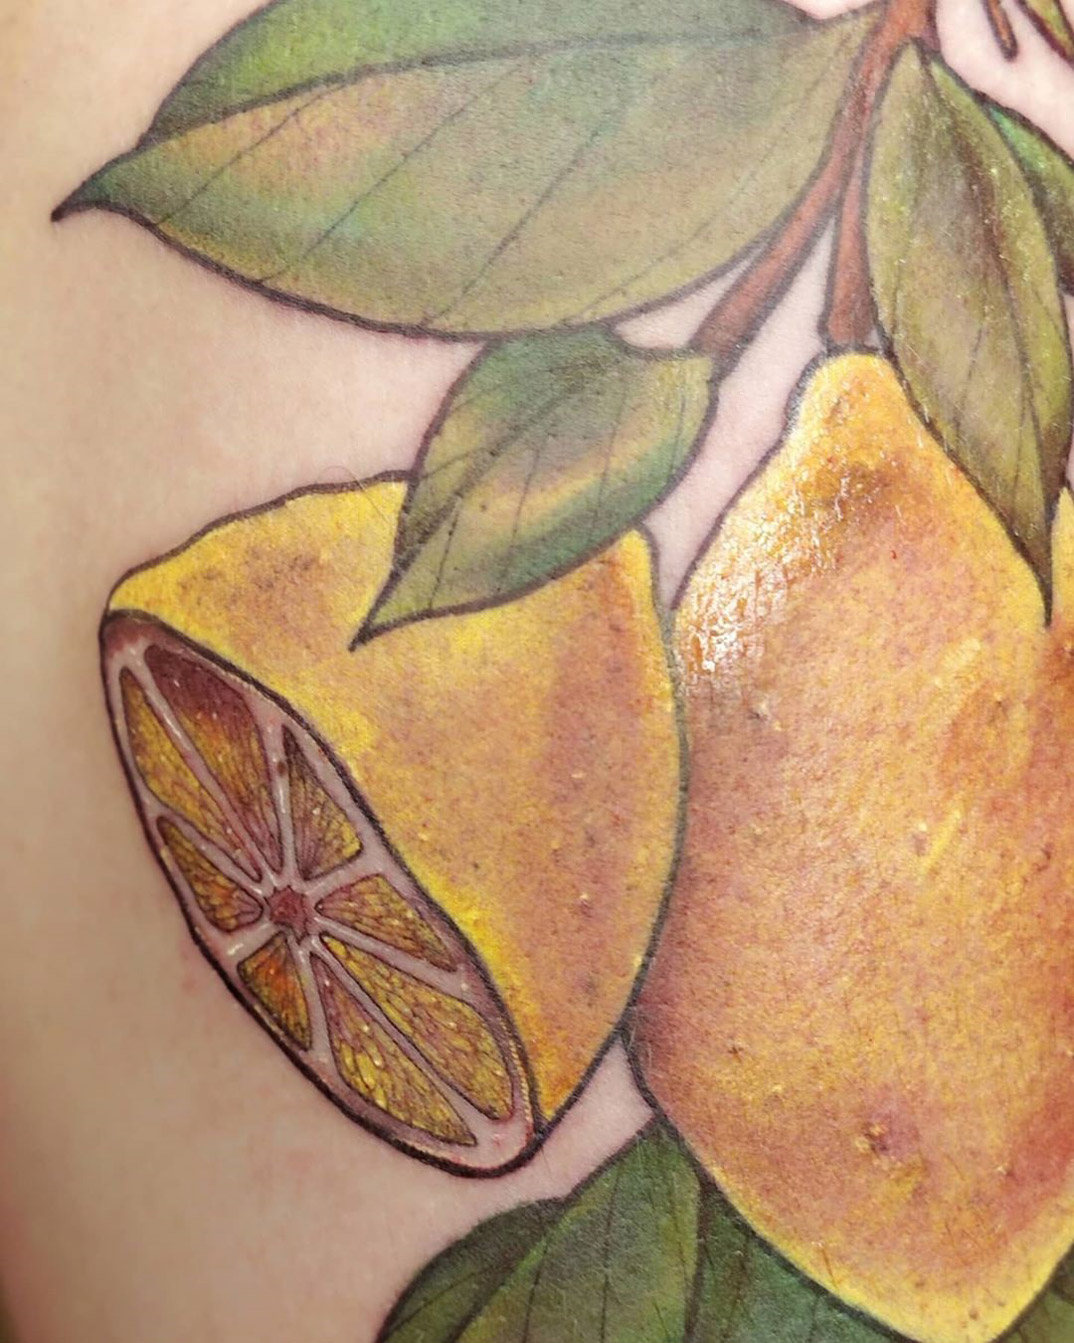 Lemon detail